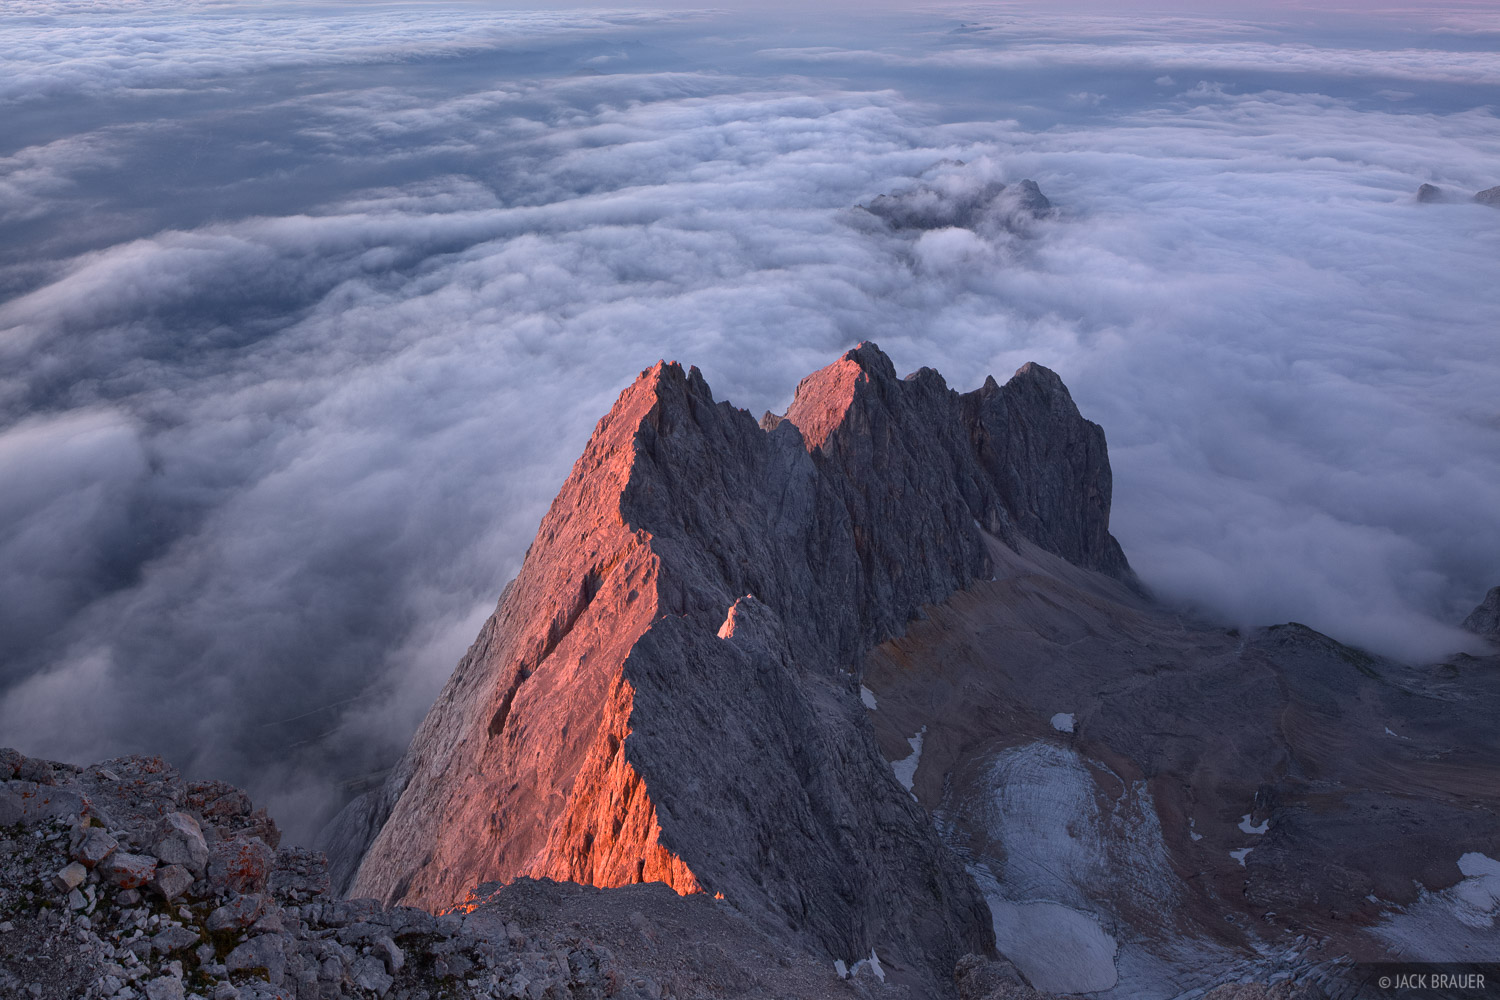 Zugspitze, Wettersteingebirge, Germany, sunset, clouds, Alps, photo